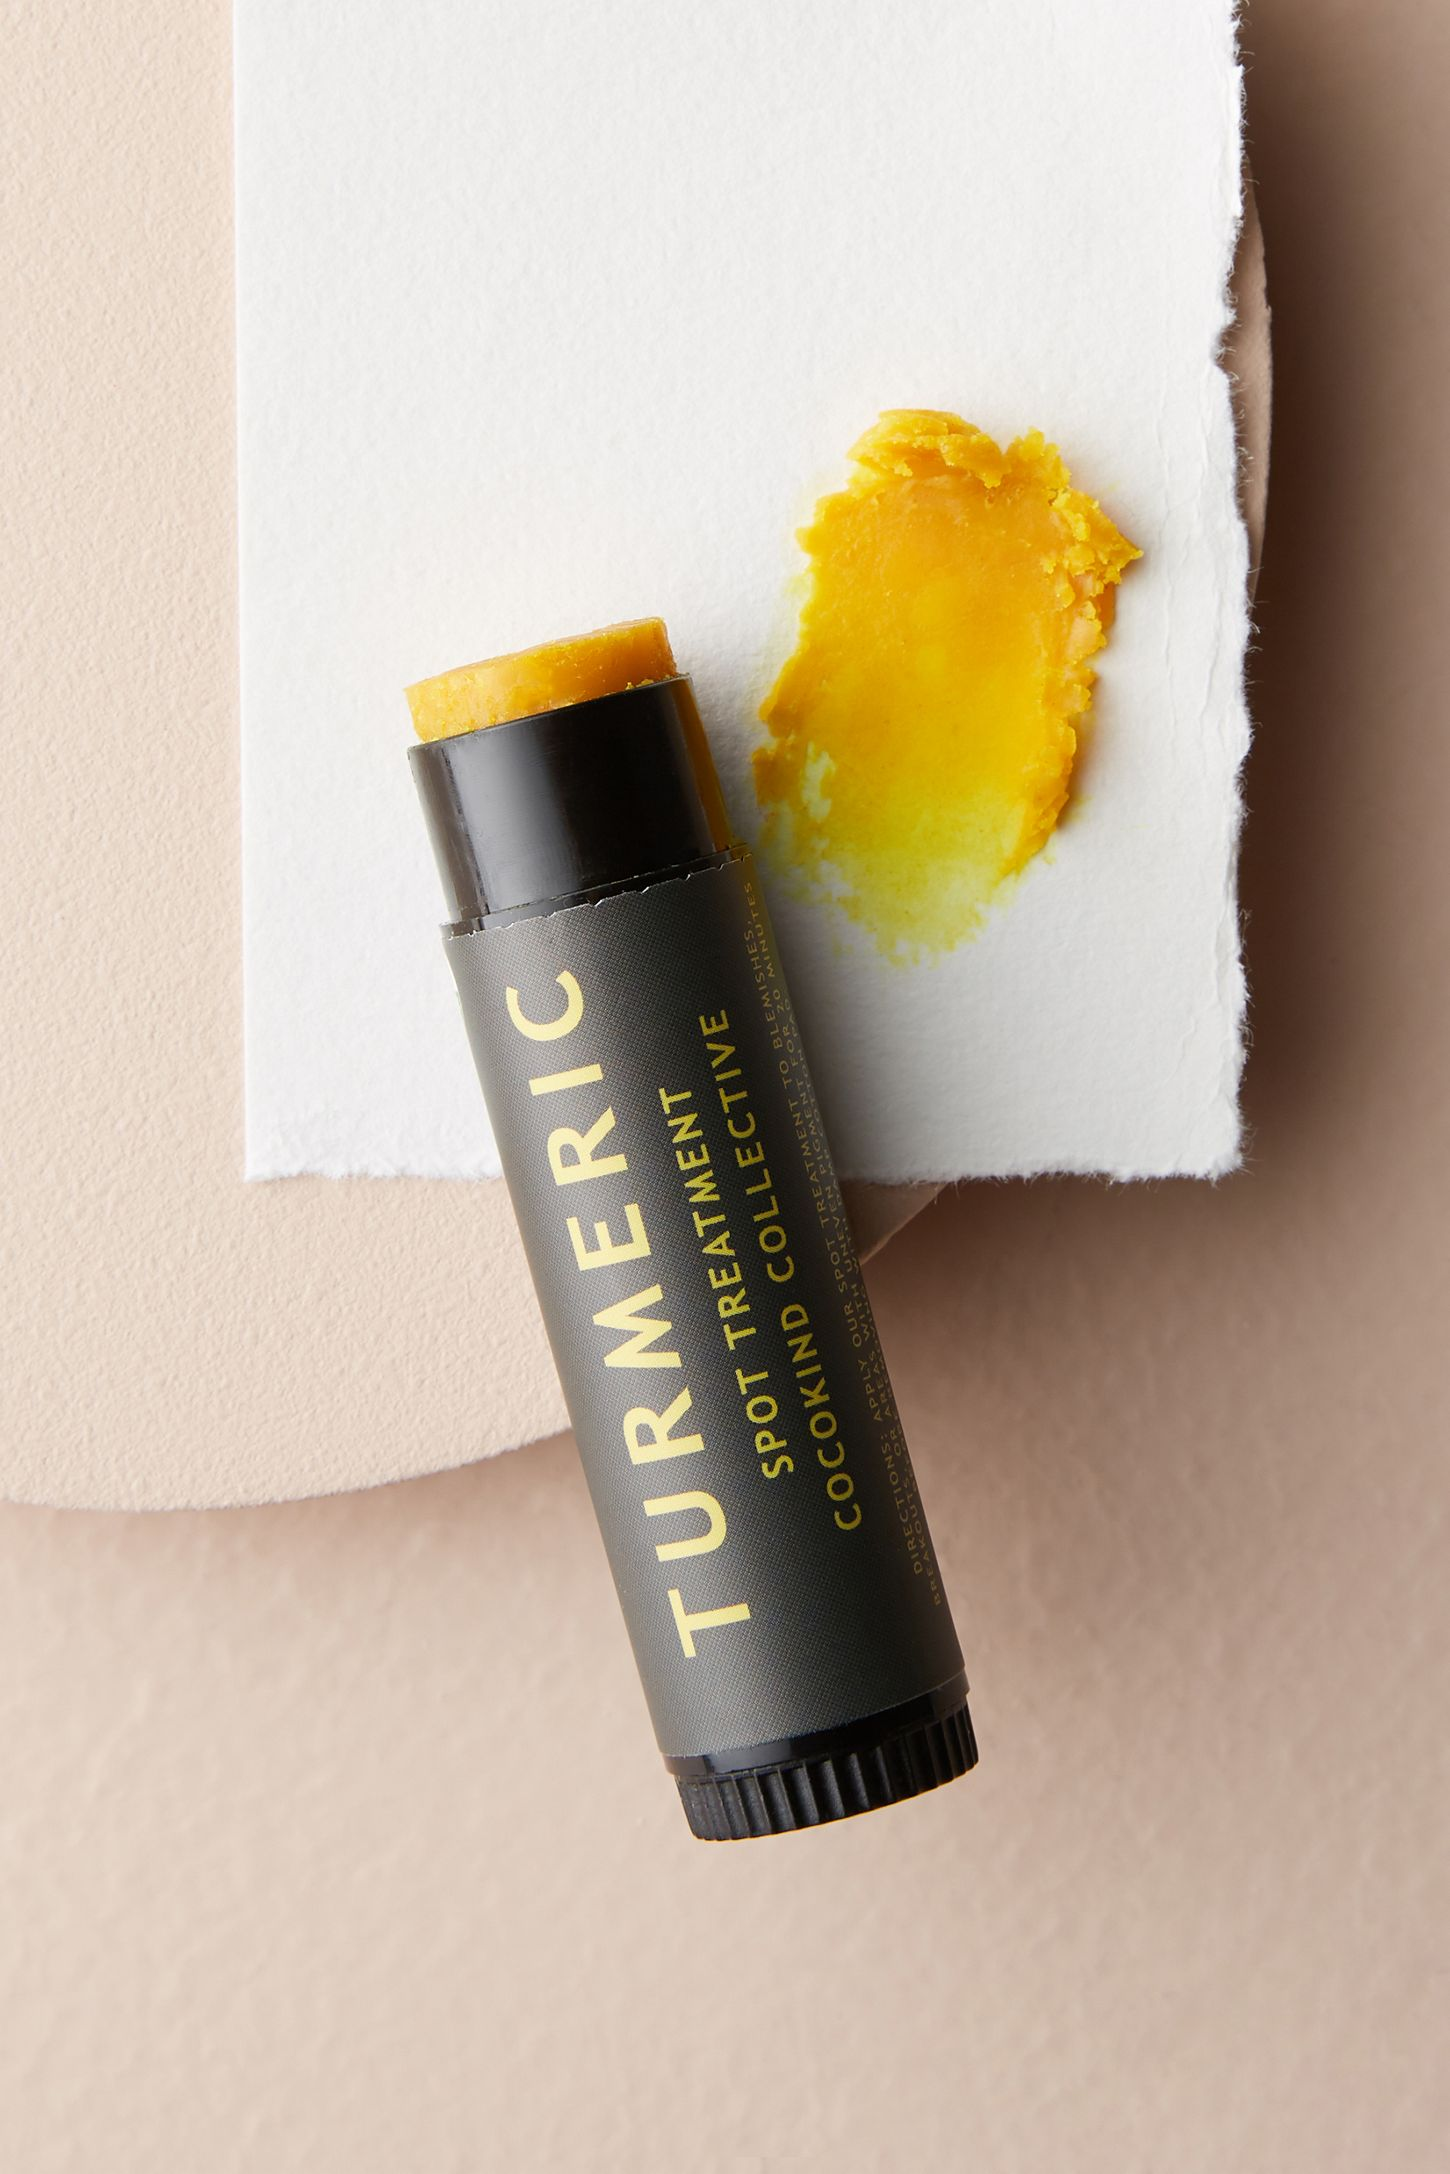 Slide View: 1: Cocokind Turmeric Spot Treatment